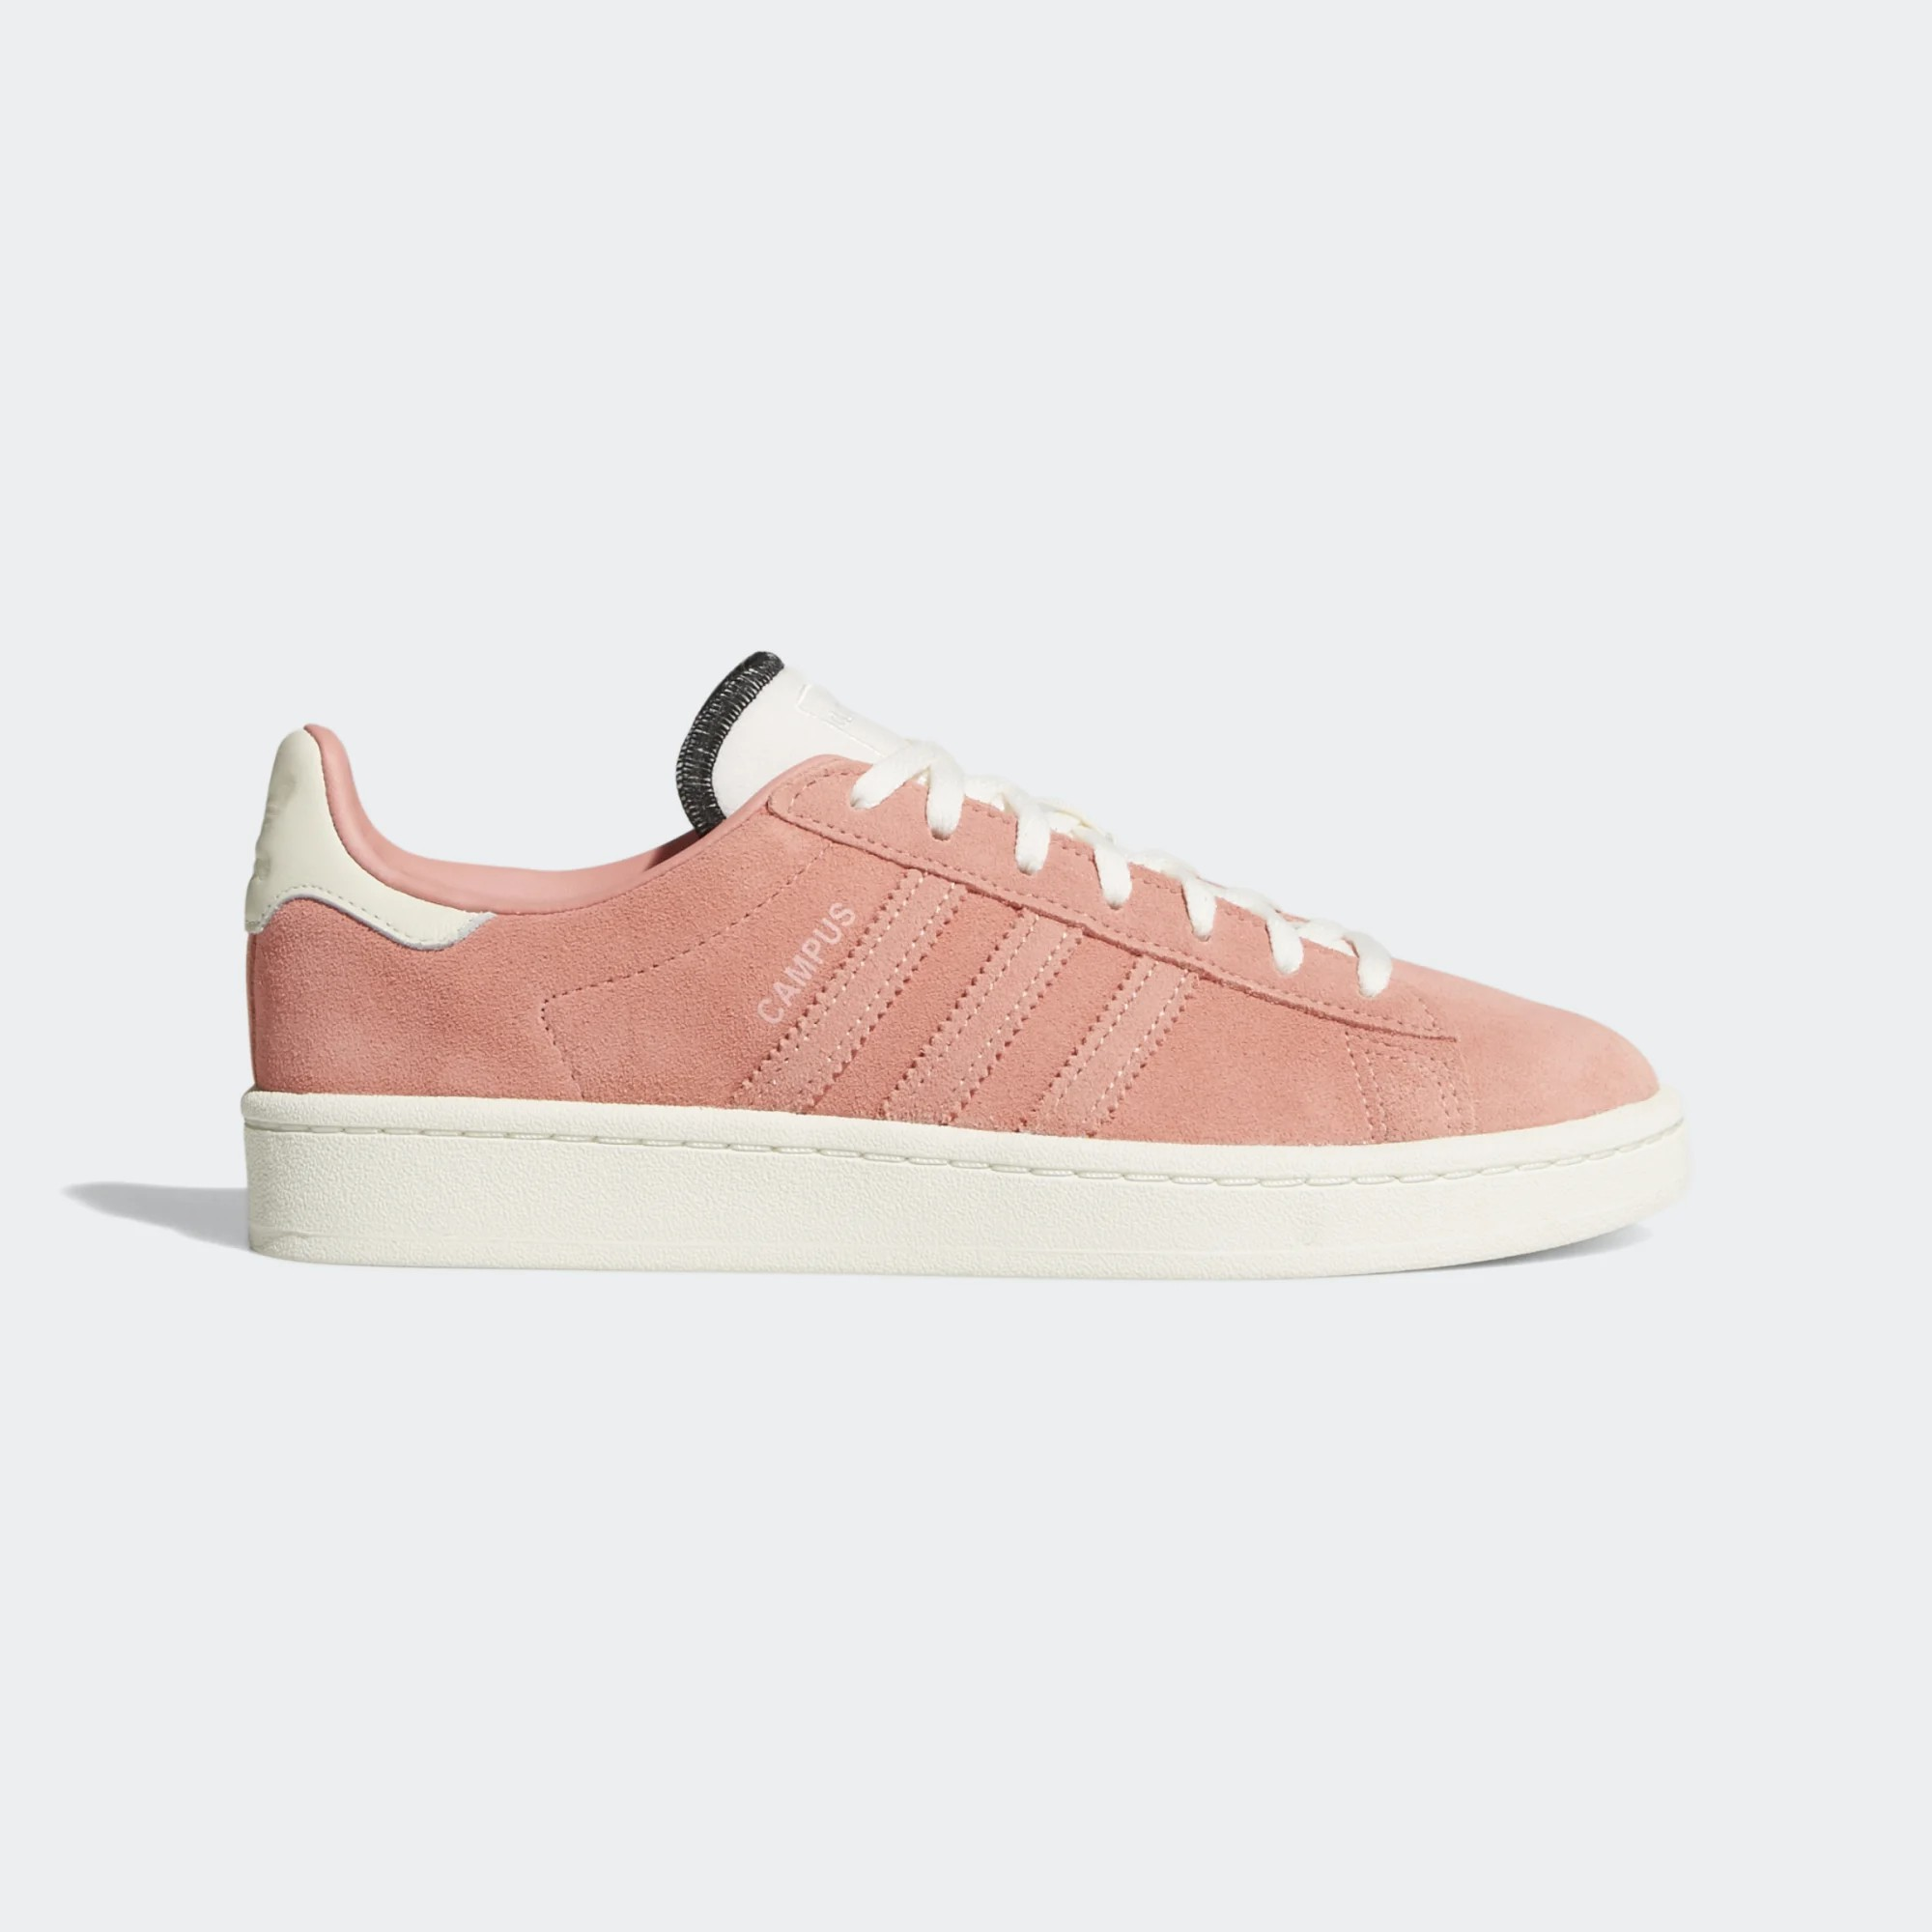 adidas Originals Campus W CG6028 Pink Sneakers